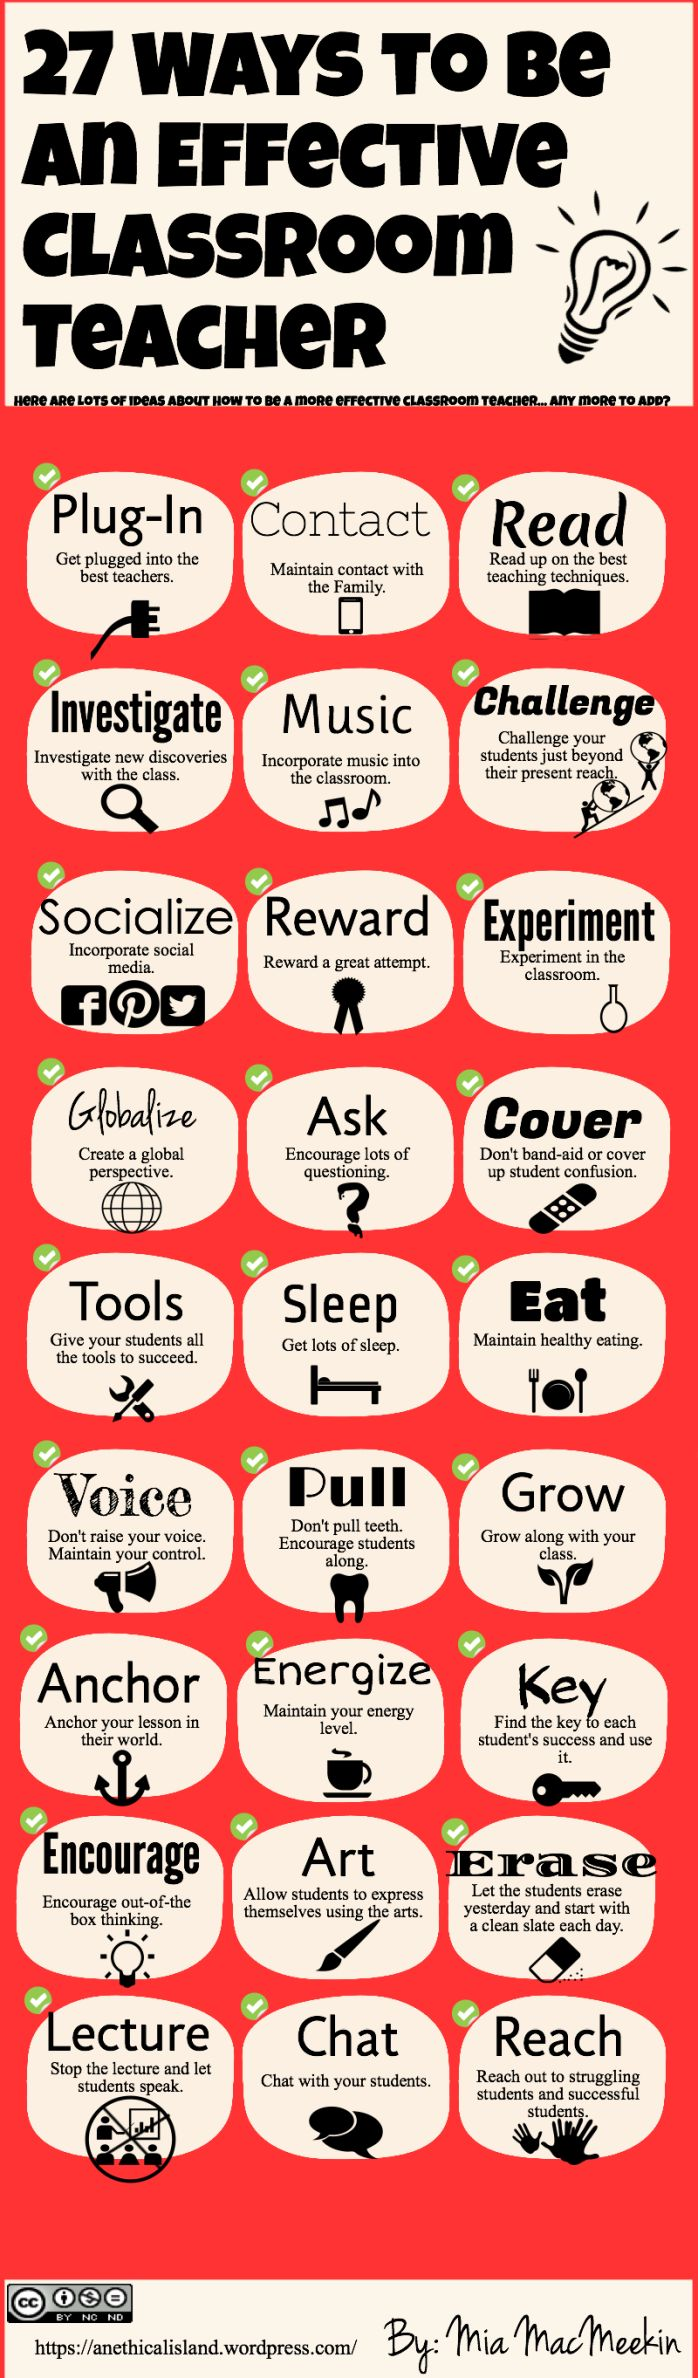 best teaching images on pinterest school day care and activities